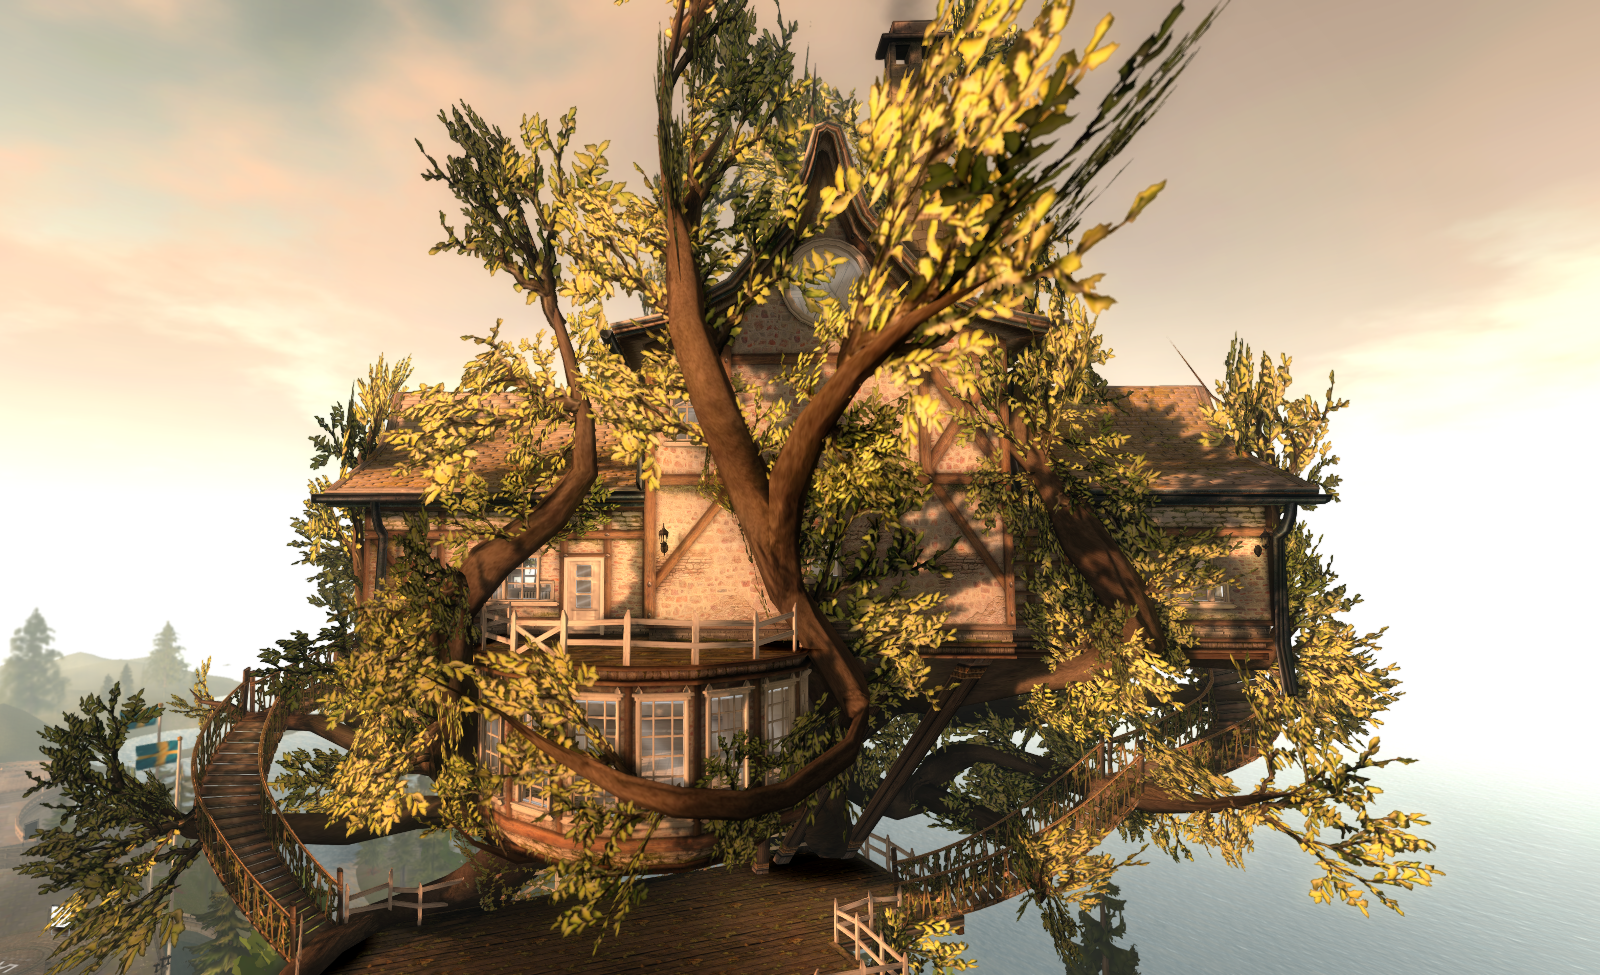 Tree house: another view